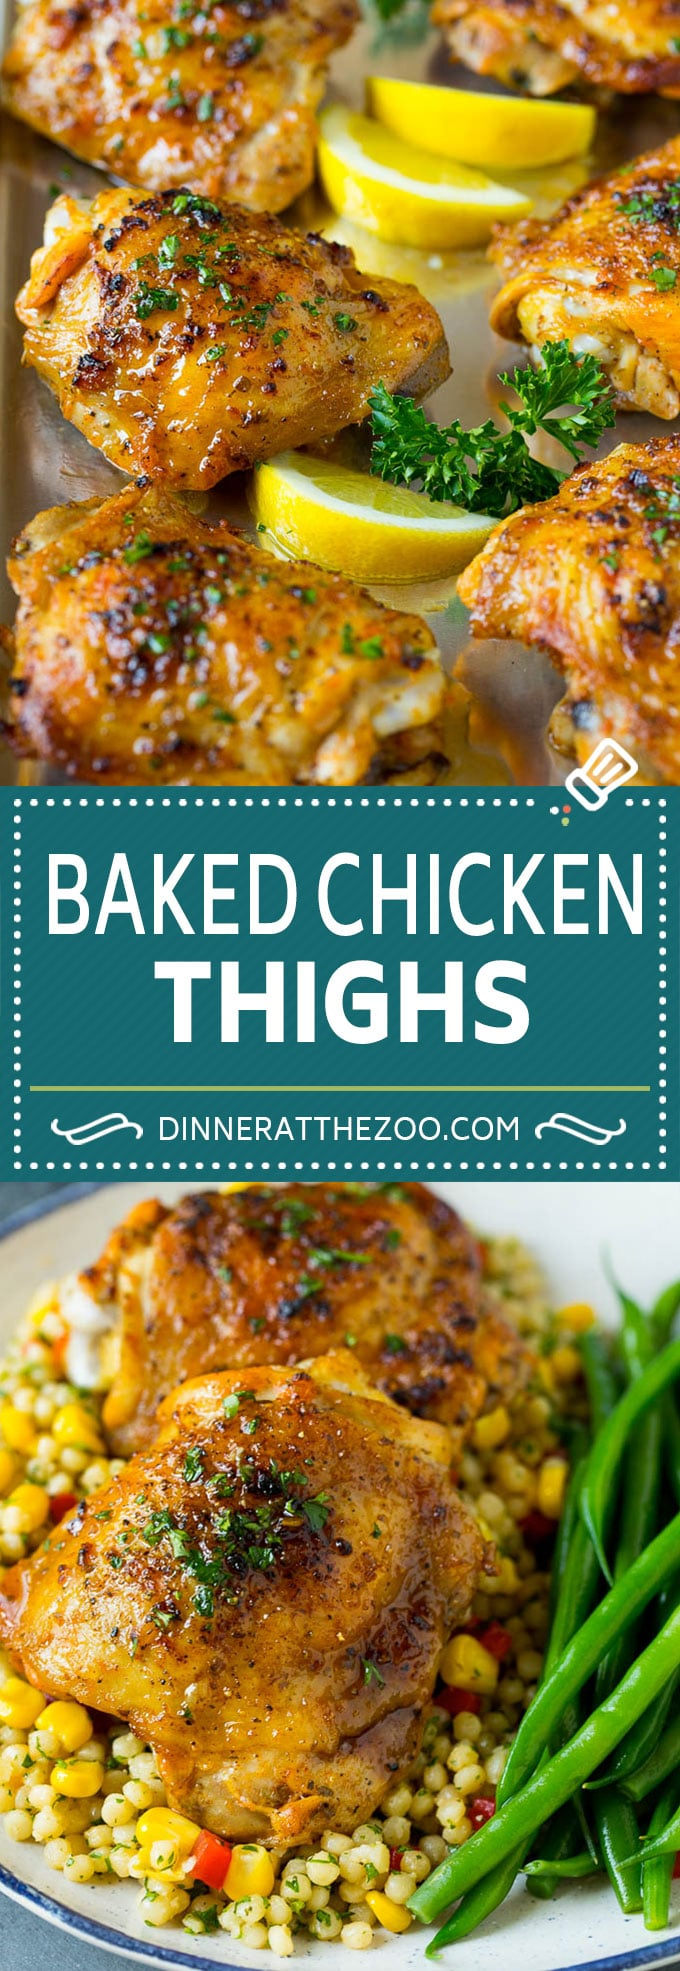 These baked chicken thighs are coated in olive oil, garlic and herbs, then oven roasted until golden brown.